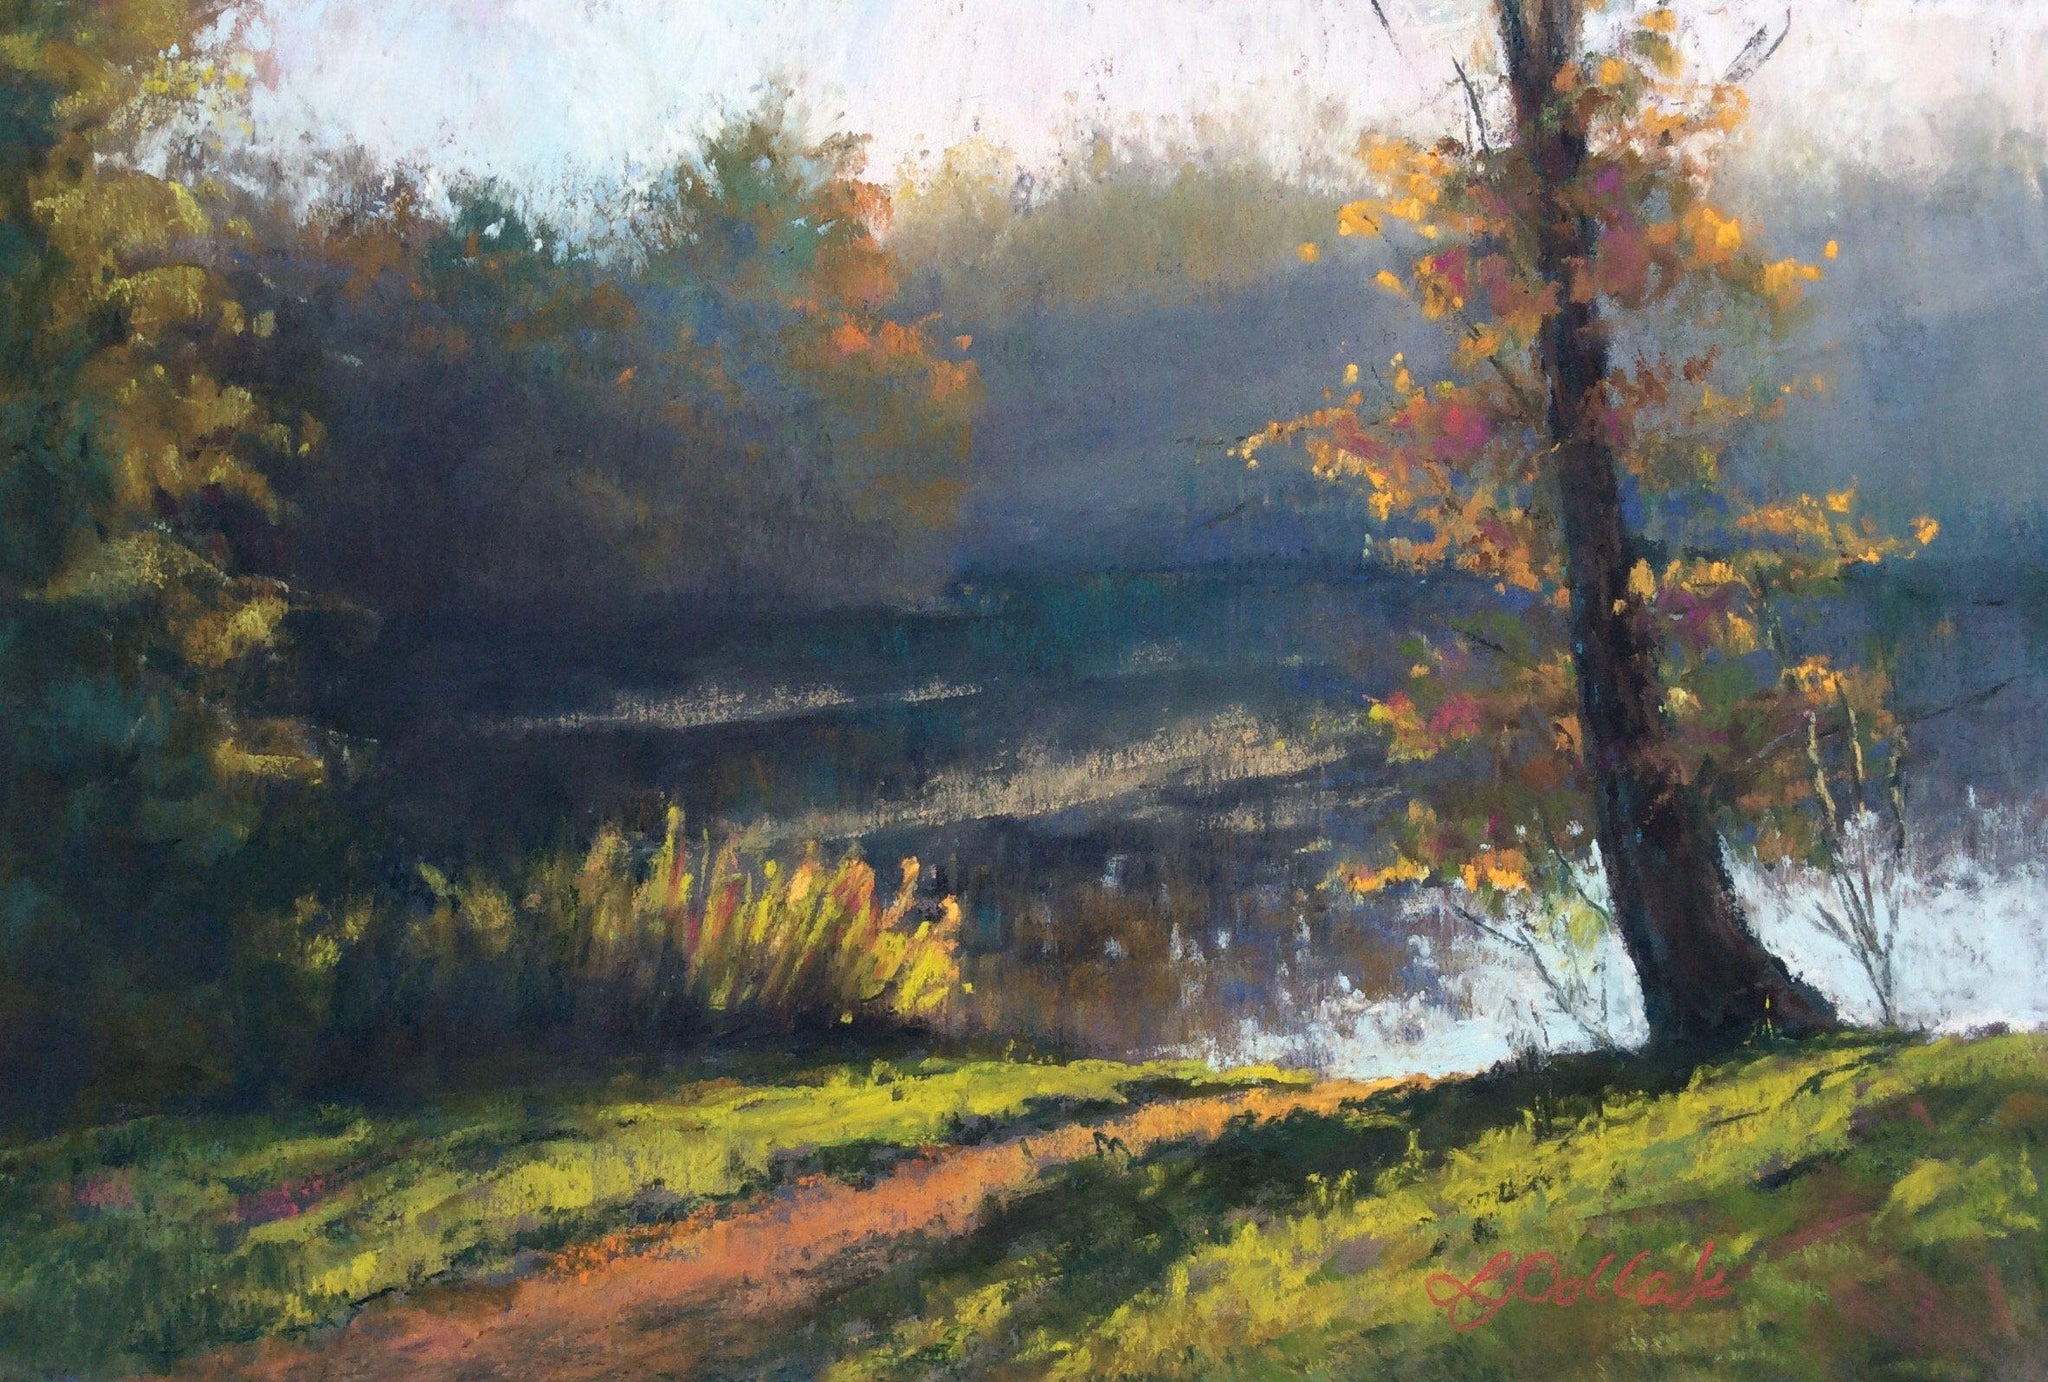 Morning Mist Paintings Laura Pollak- Portfolio2 Gallery